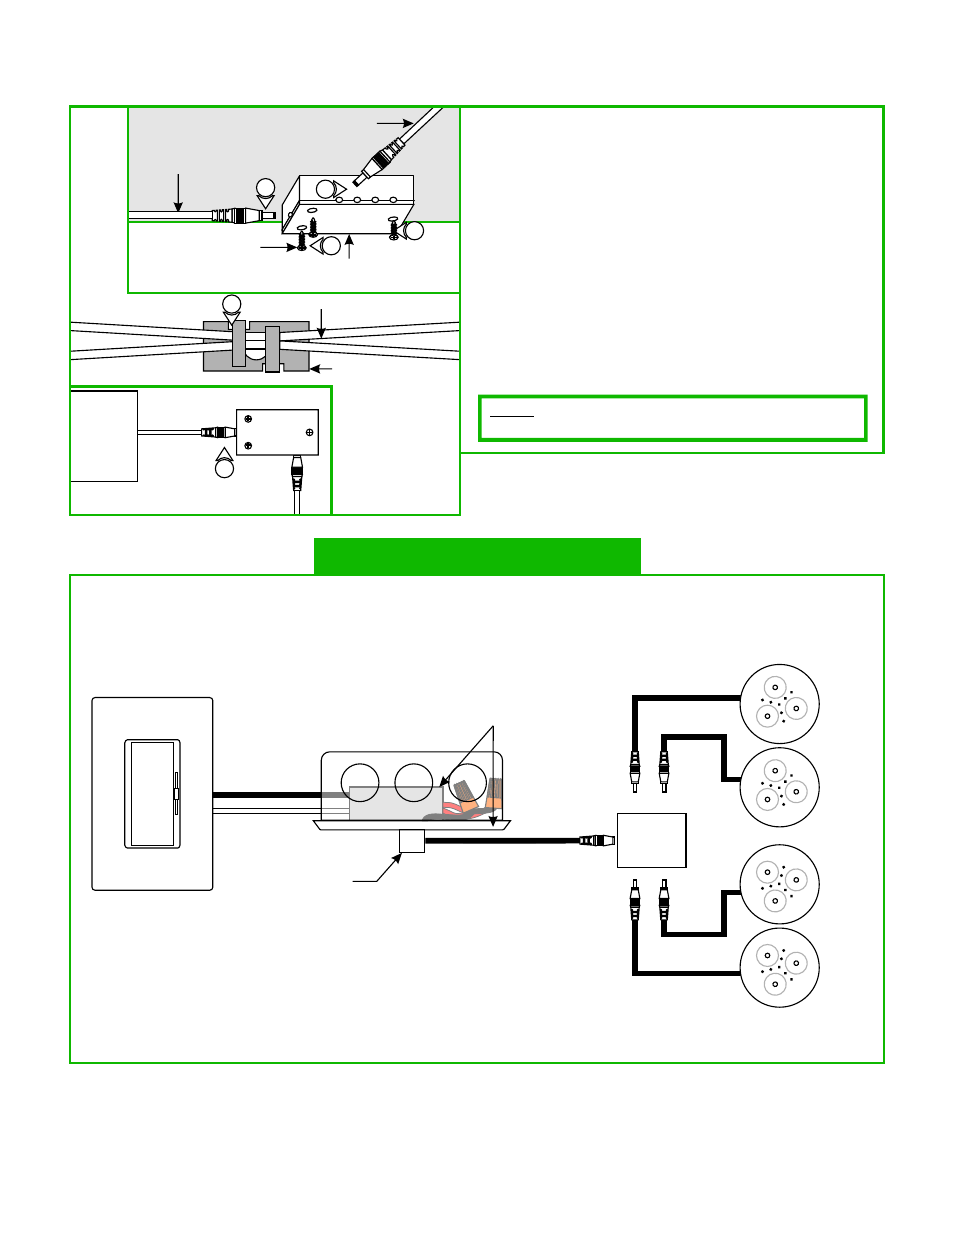 Power the puck lights, Typical wiring diagram